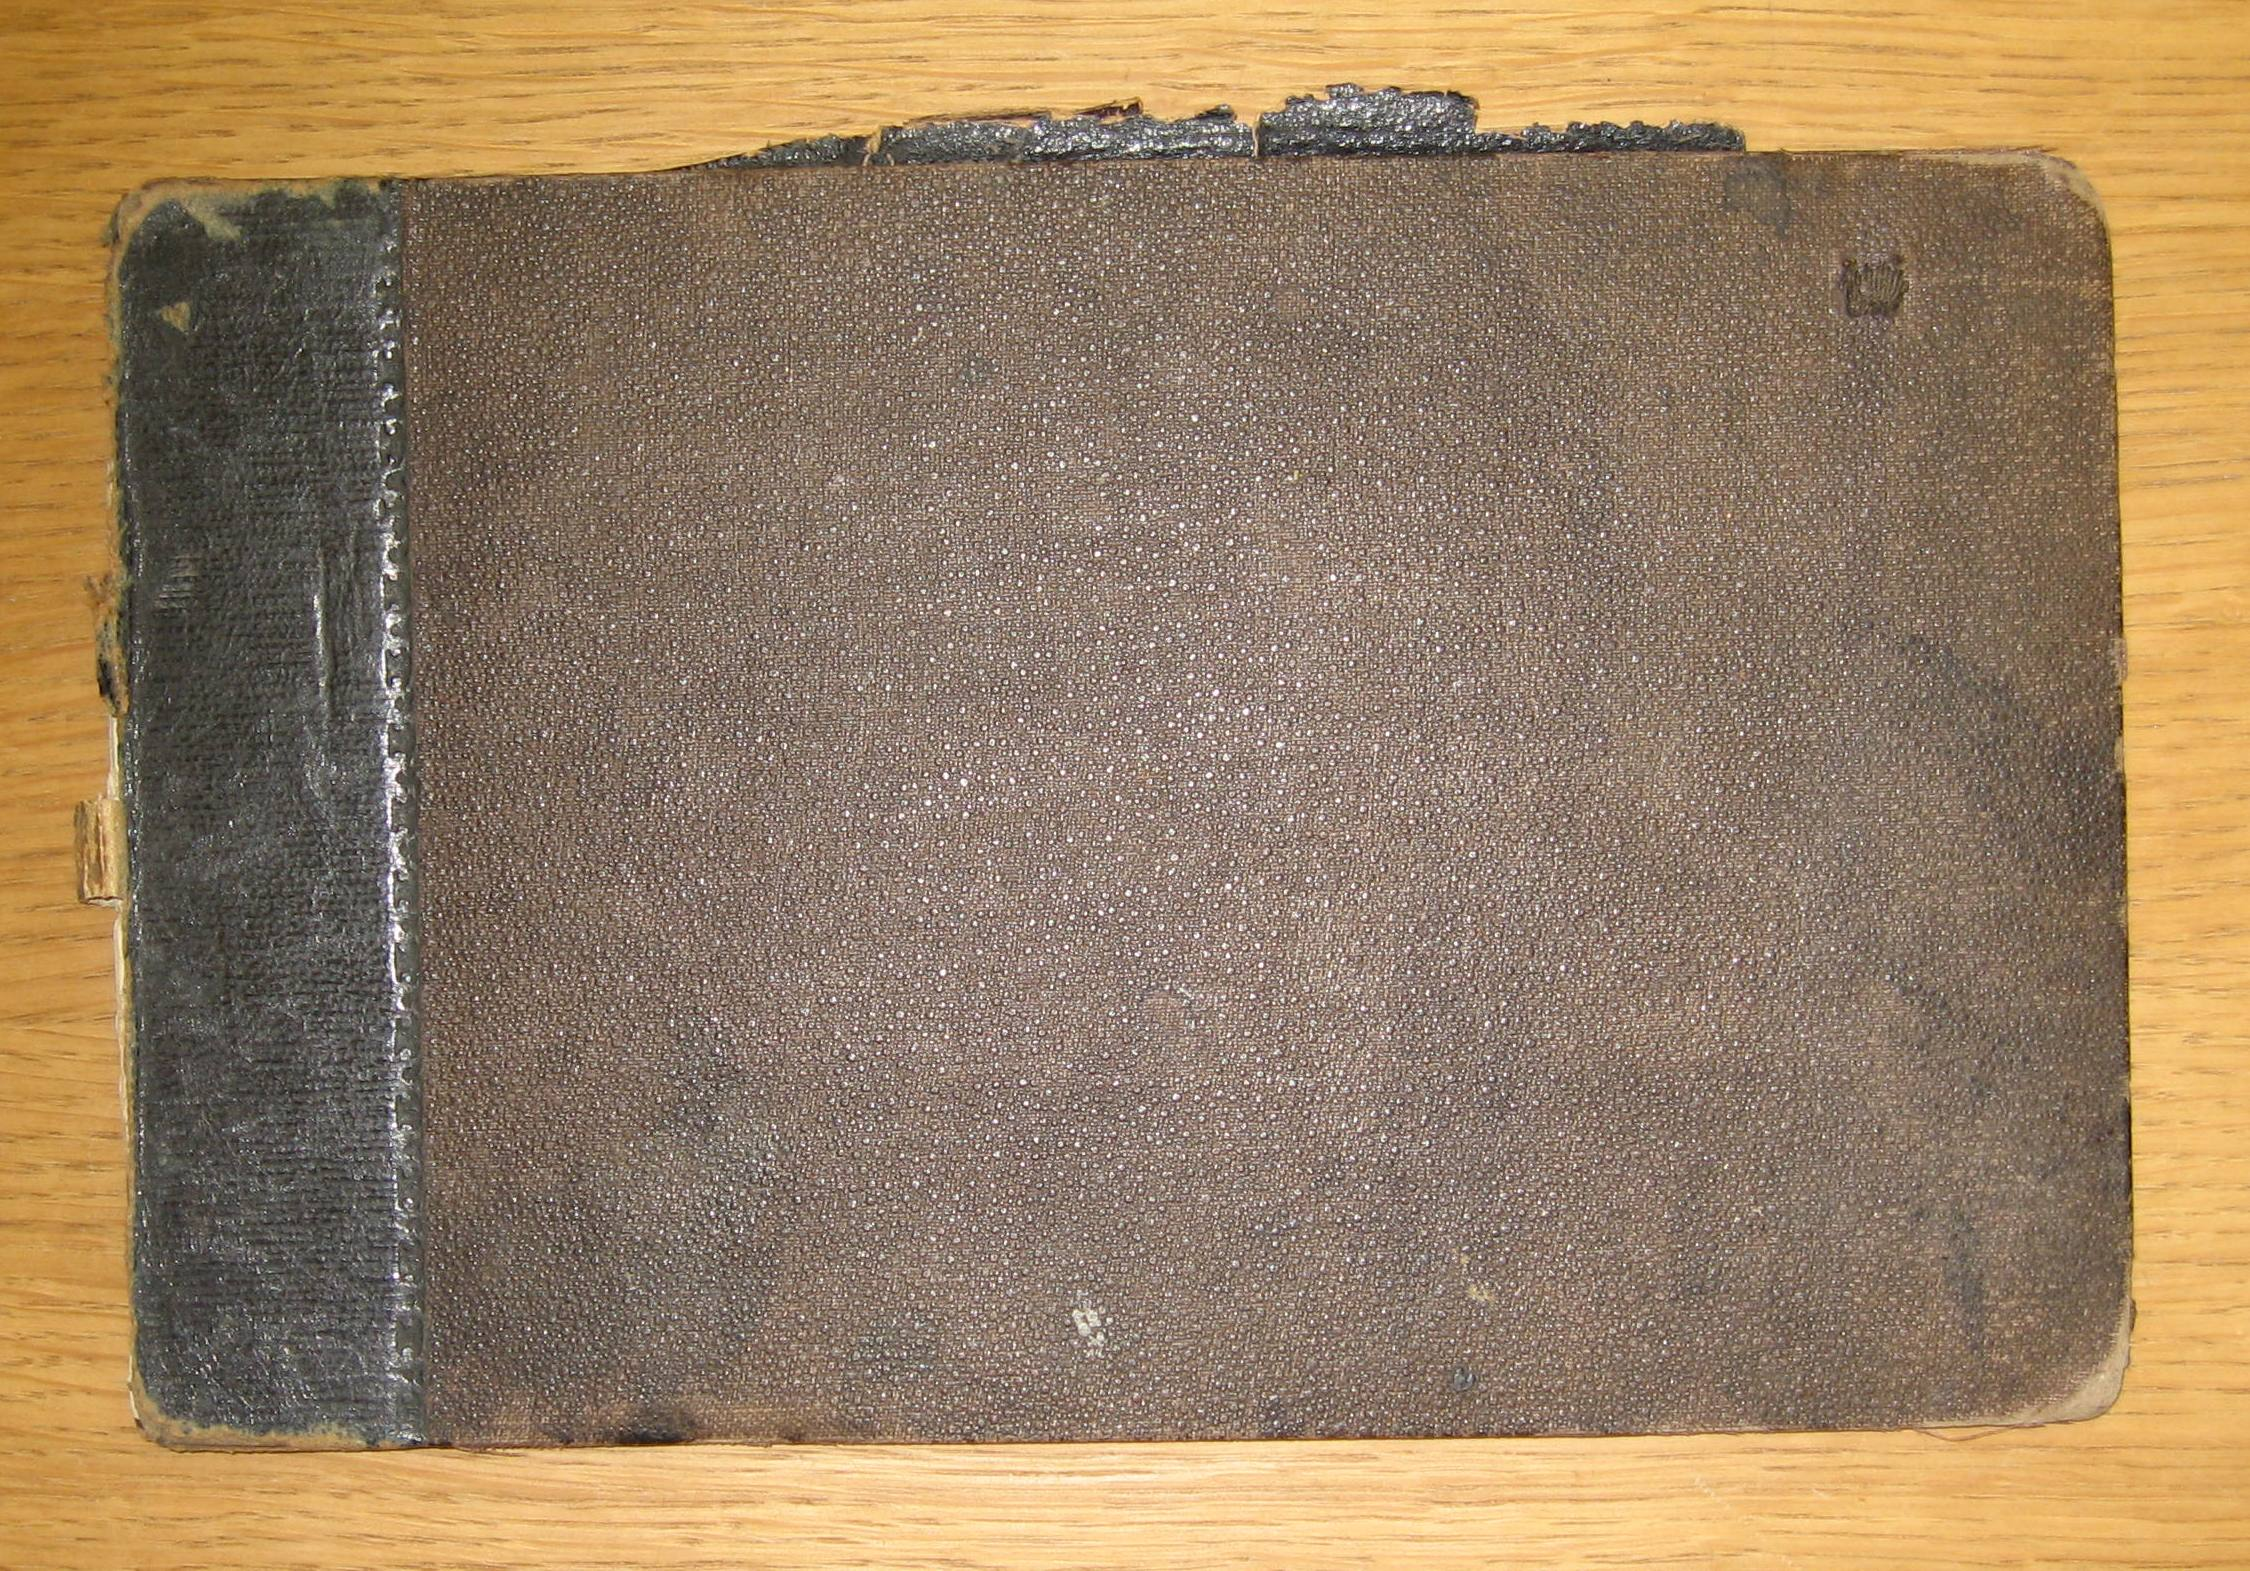 Robert Brydall's sketchbook, 1873. The unassuming cover belies the charming landscape sketches within